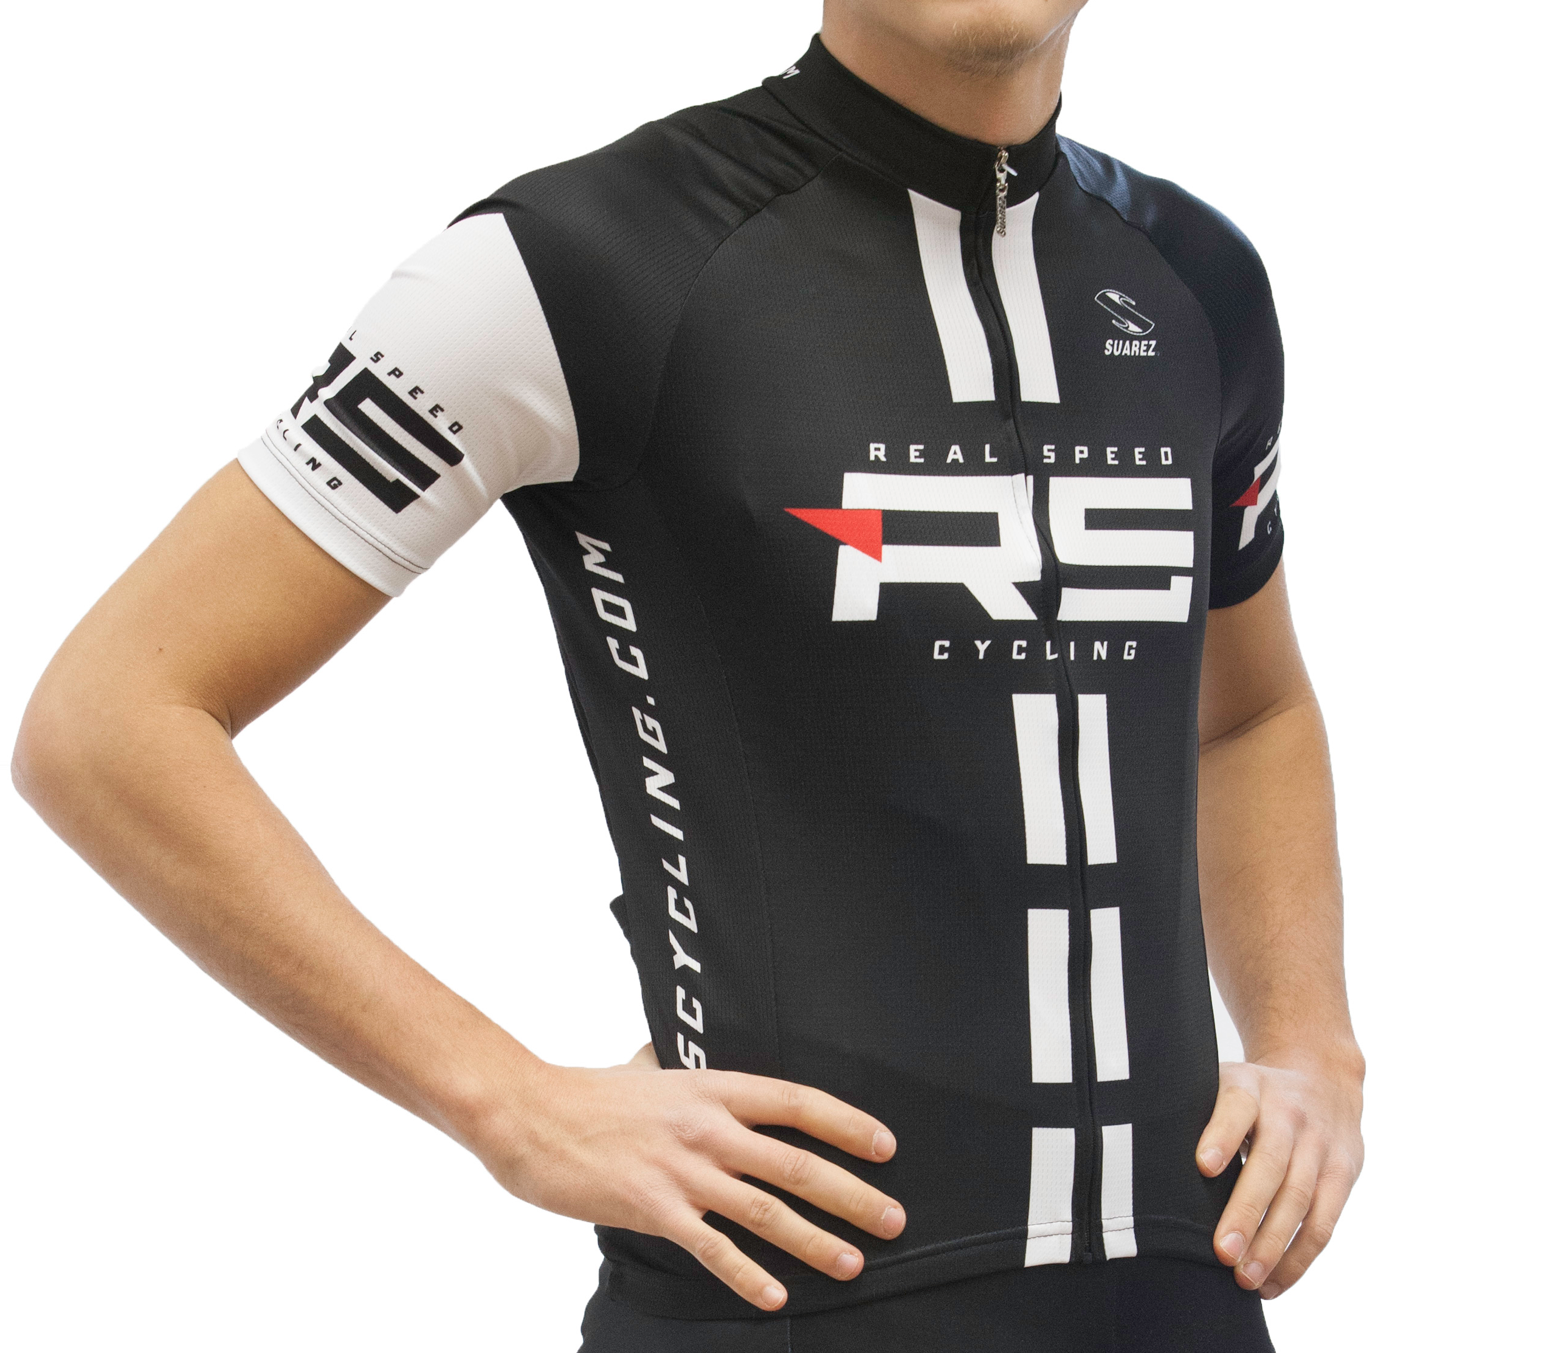 Real Speed Cycling Jersey - Racer Sportif